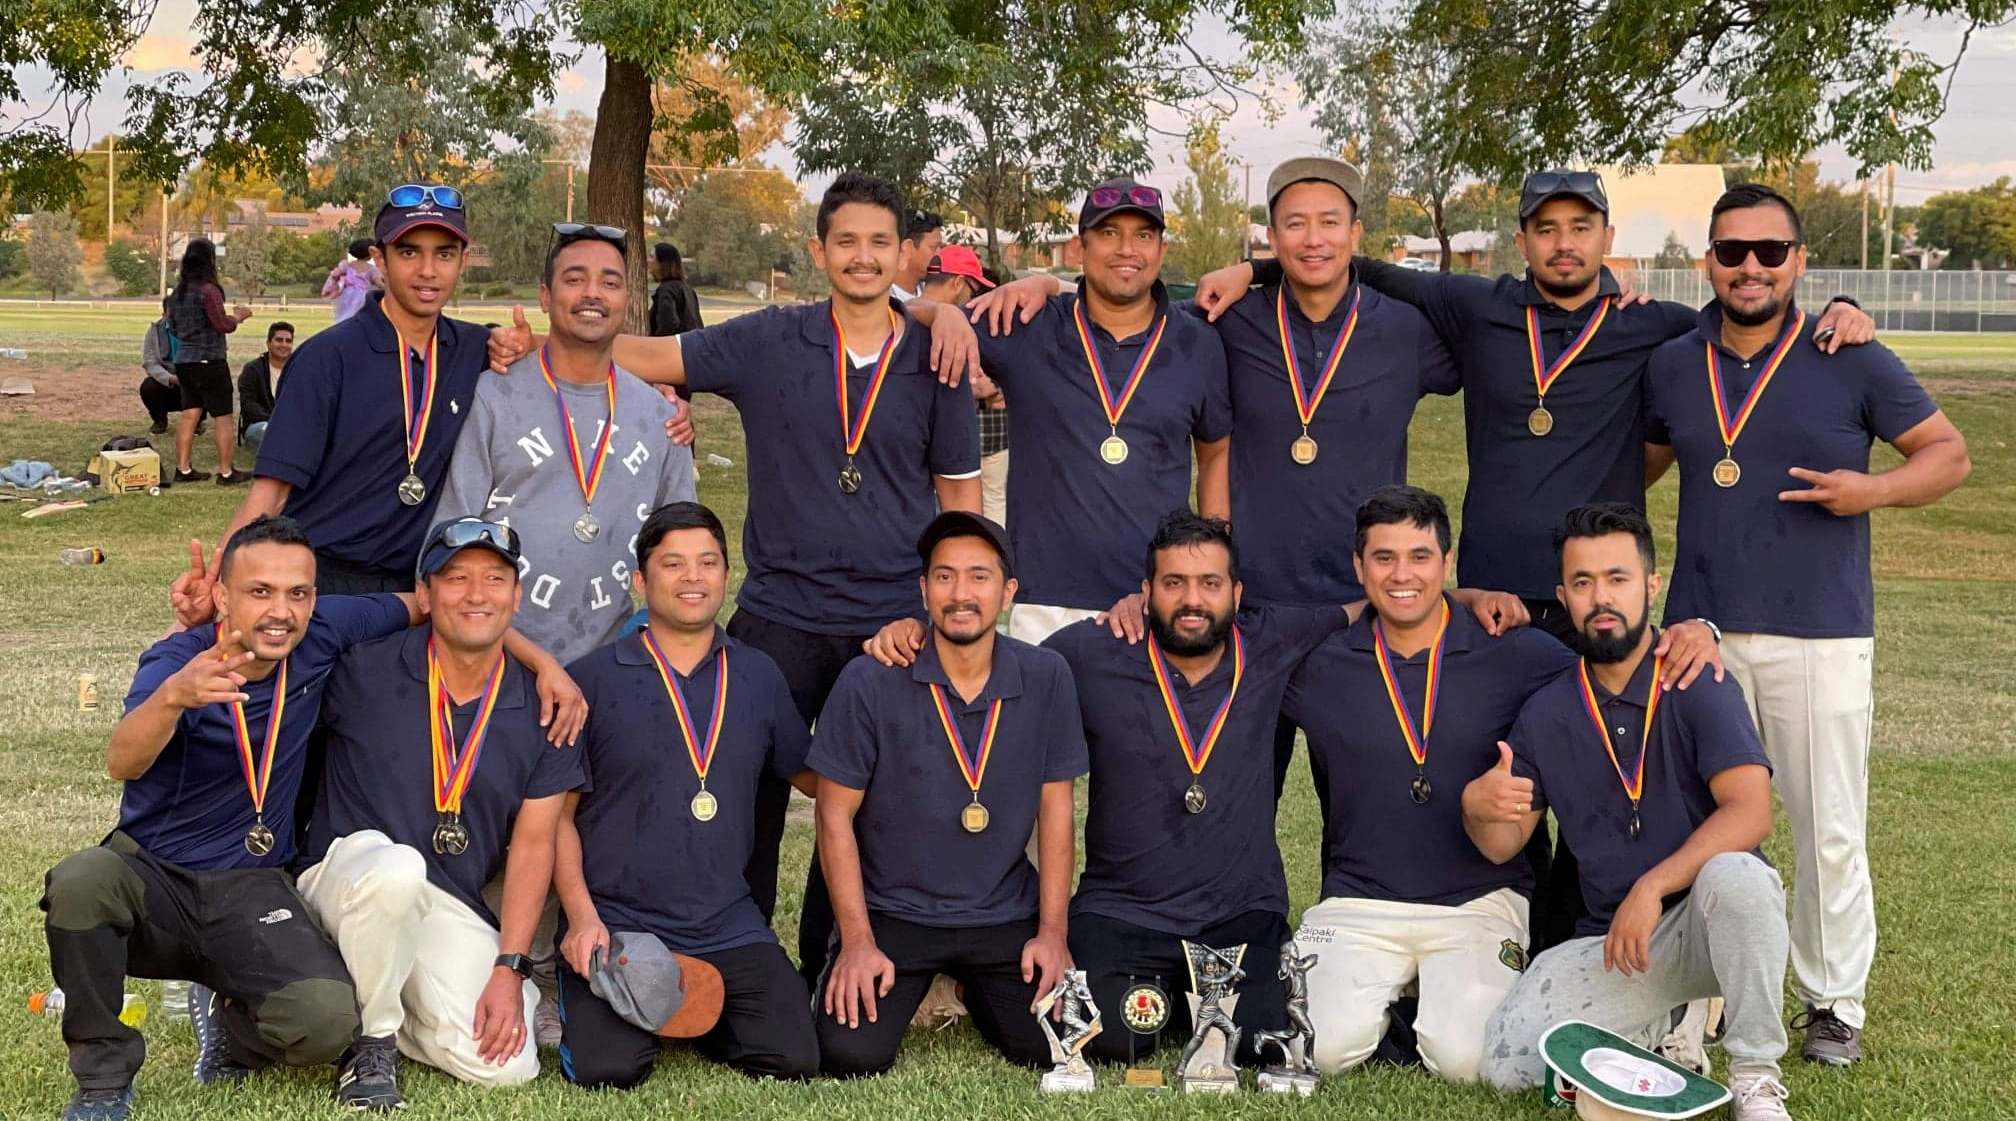 Dubbo Nepalese Team Stars winner of the ORISCON T-20 cricket tournament 2021